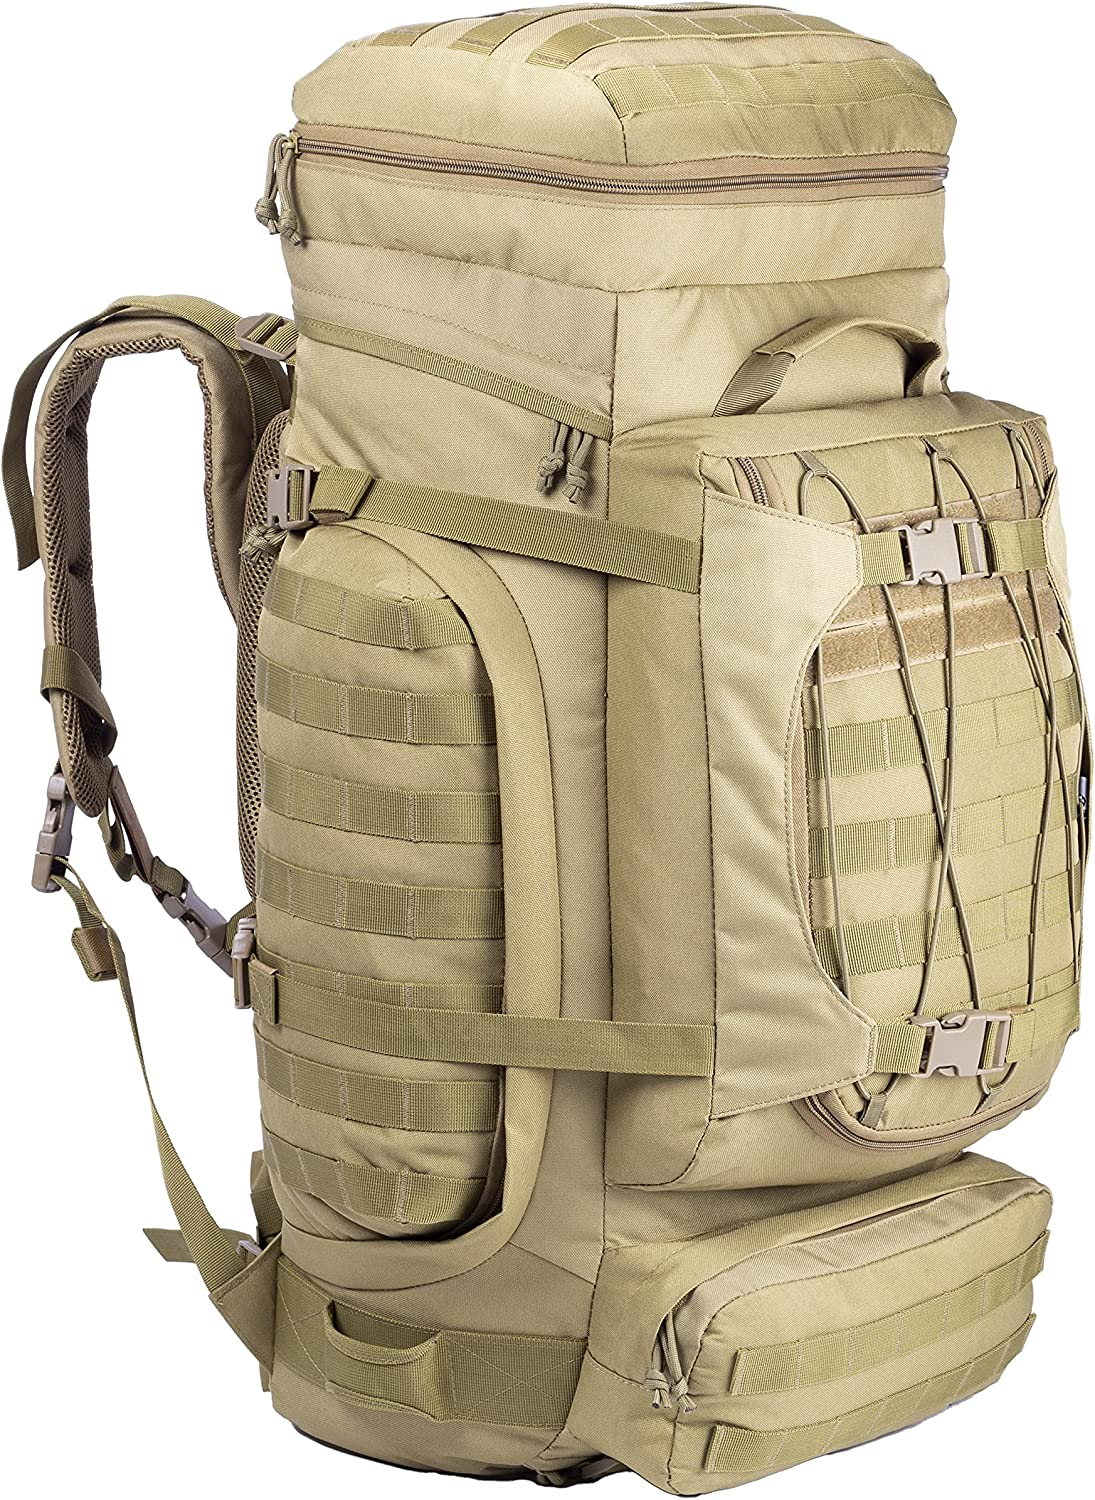 San Jose Mall Some reservation XMILPAX Military Internal Frame Army Backpack Tactical Rucksack